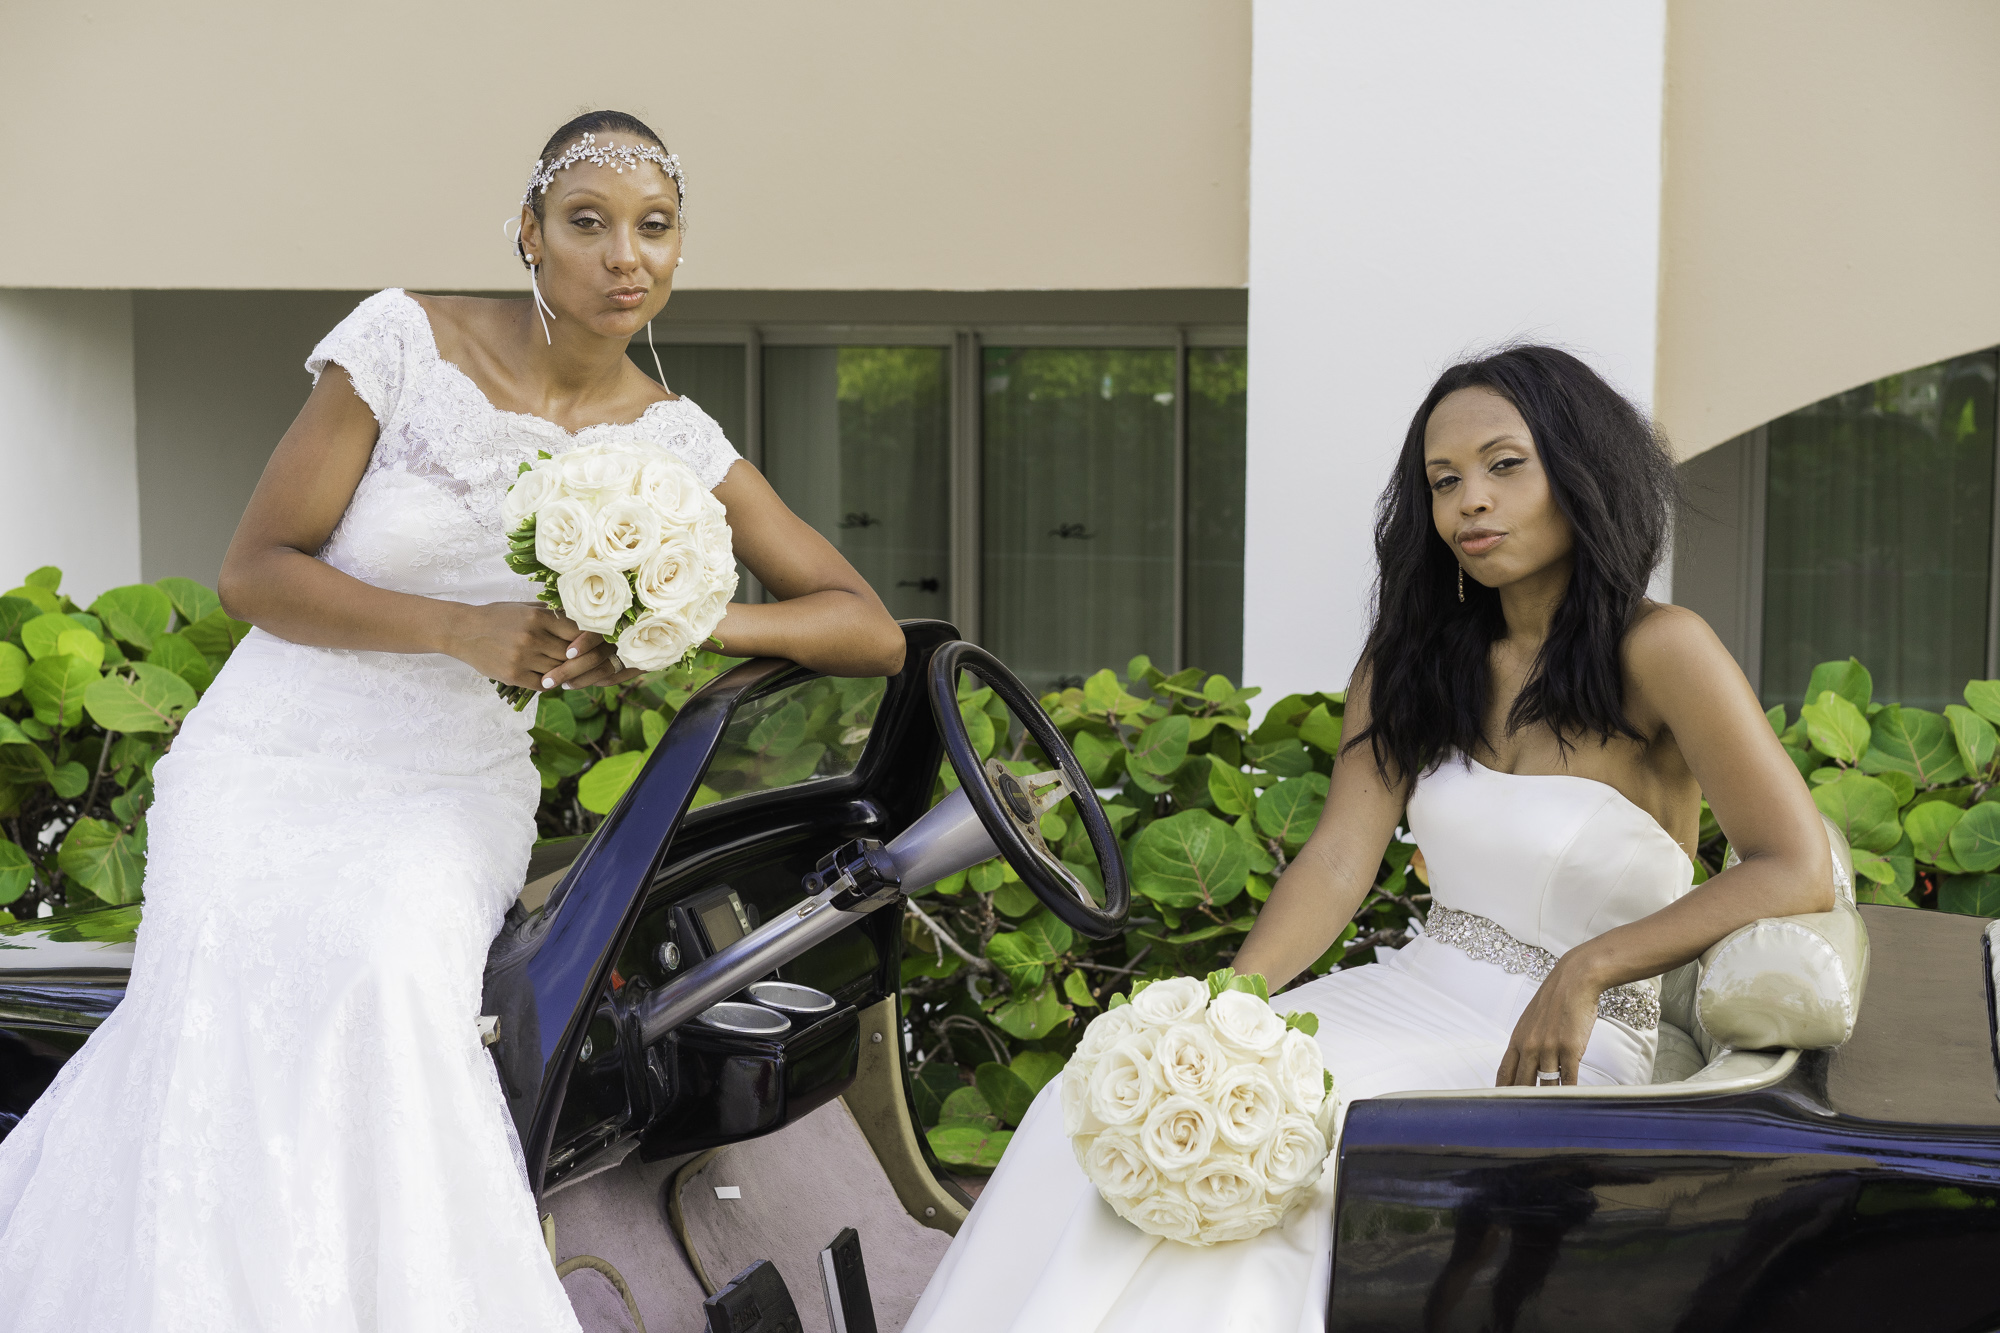 The lovely brides